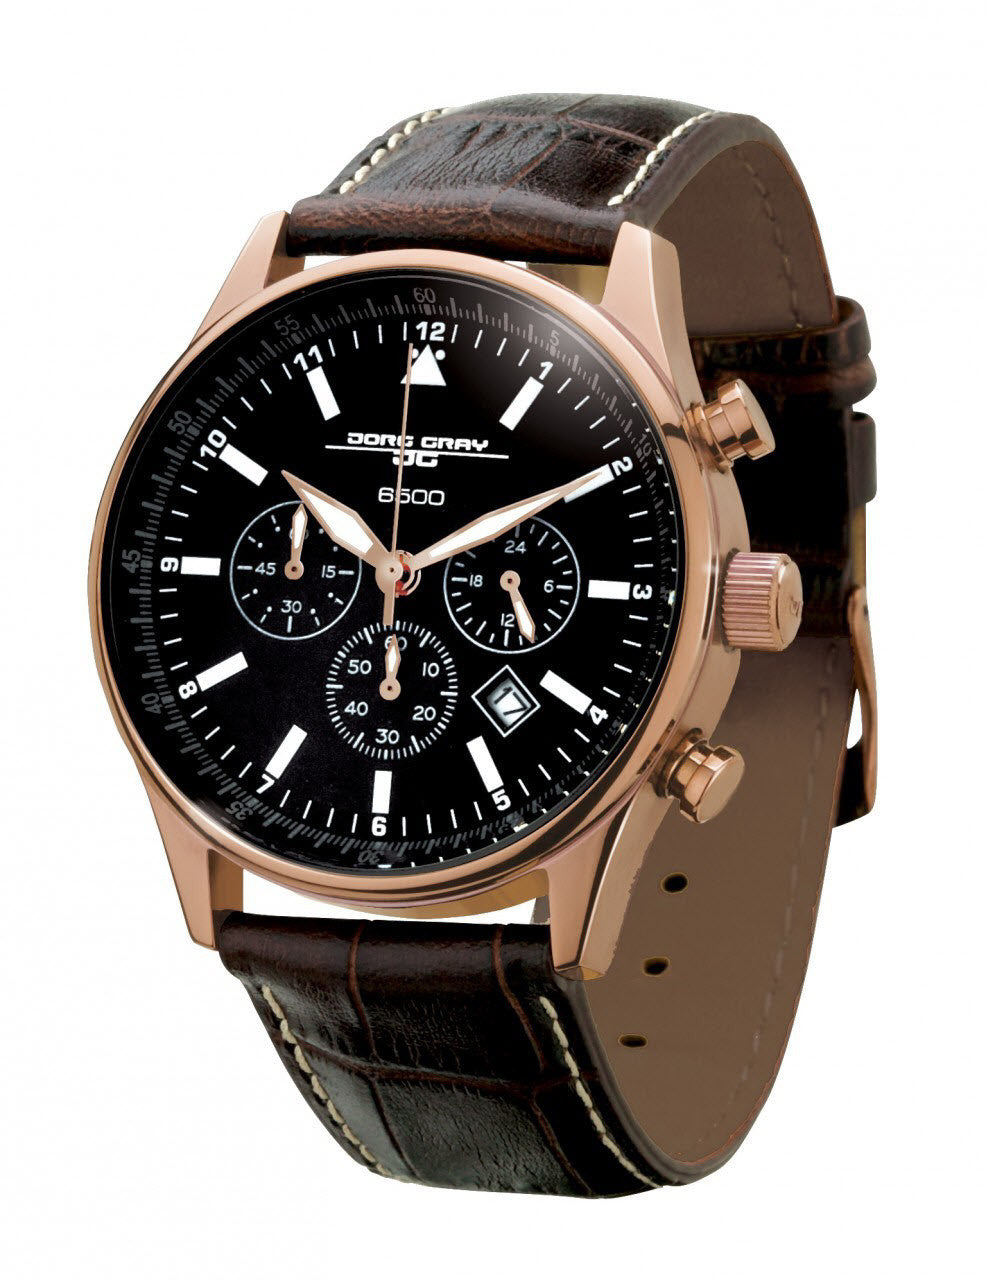 Jorg Gray Watch JG6500 Series Non Commemorative Edition Rose Gold